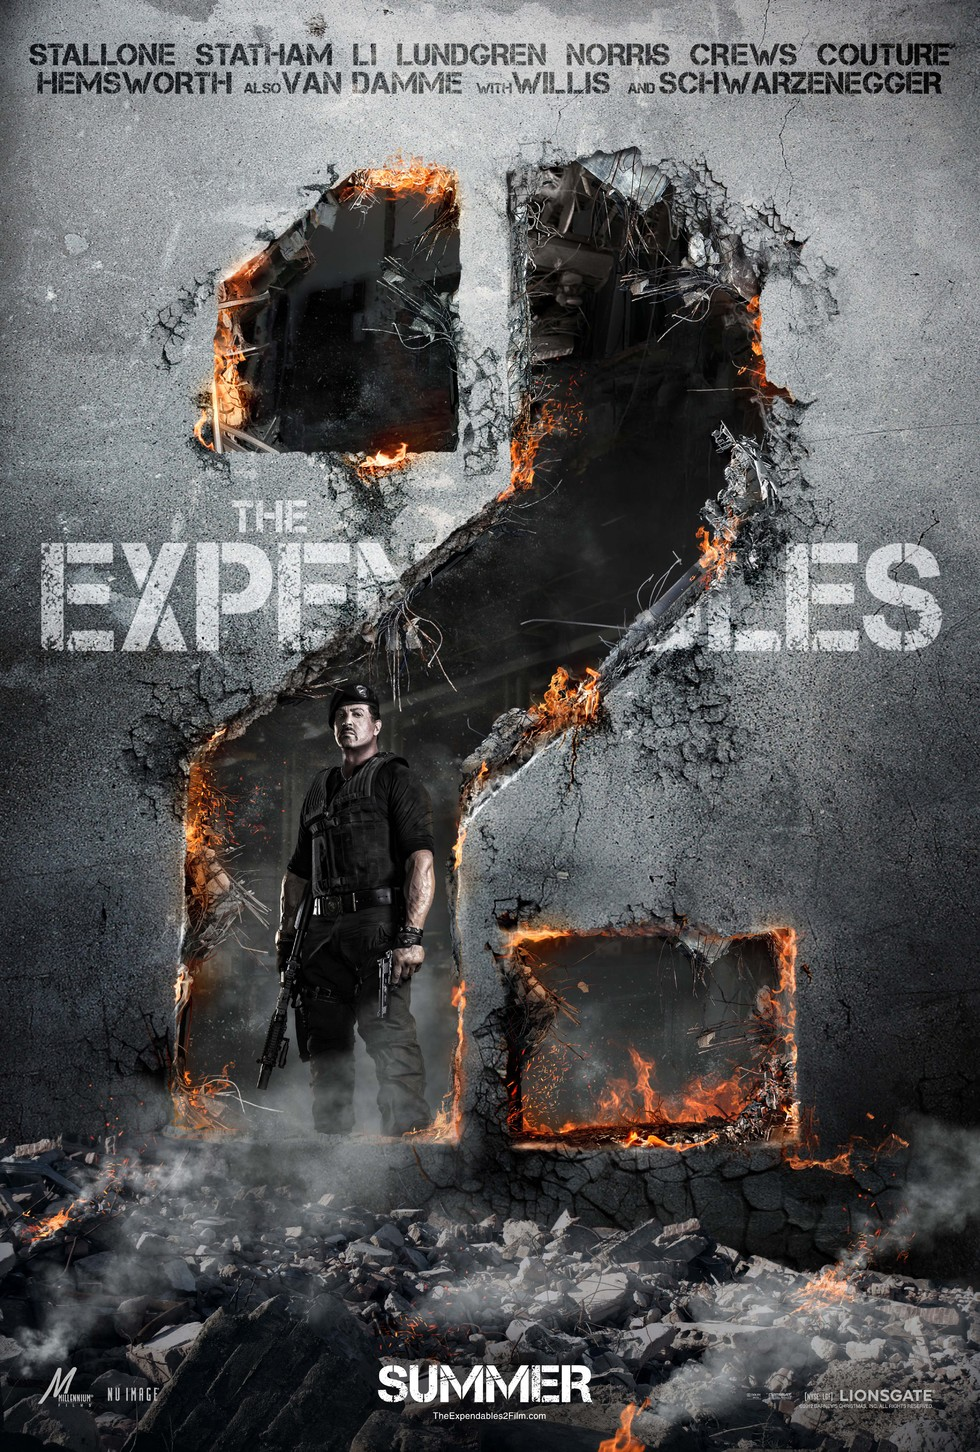 The Expendables 2 - Movie Poster #1 (Large)